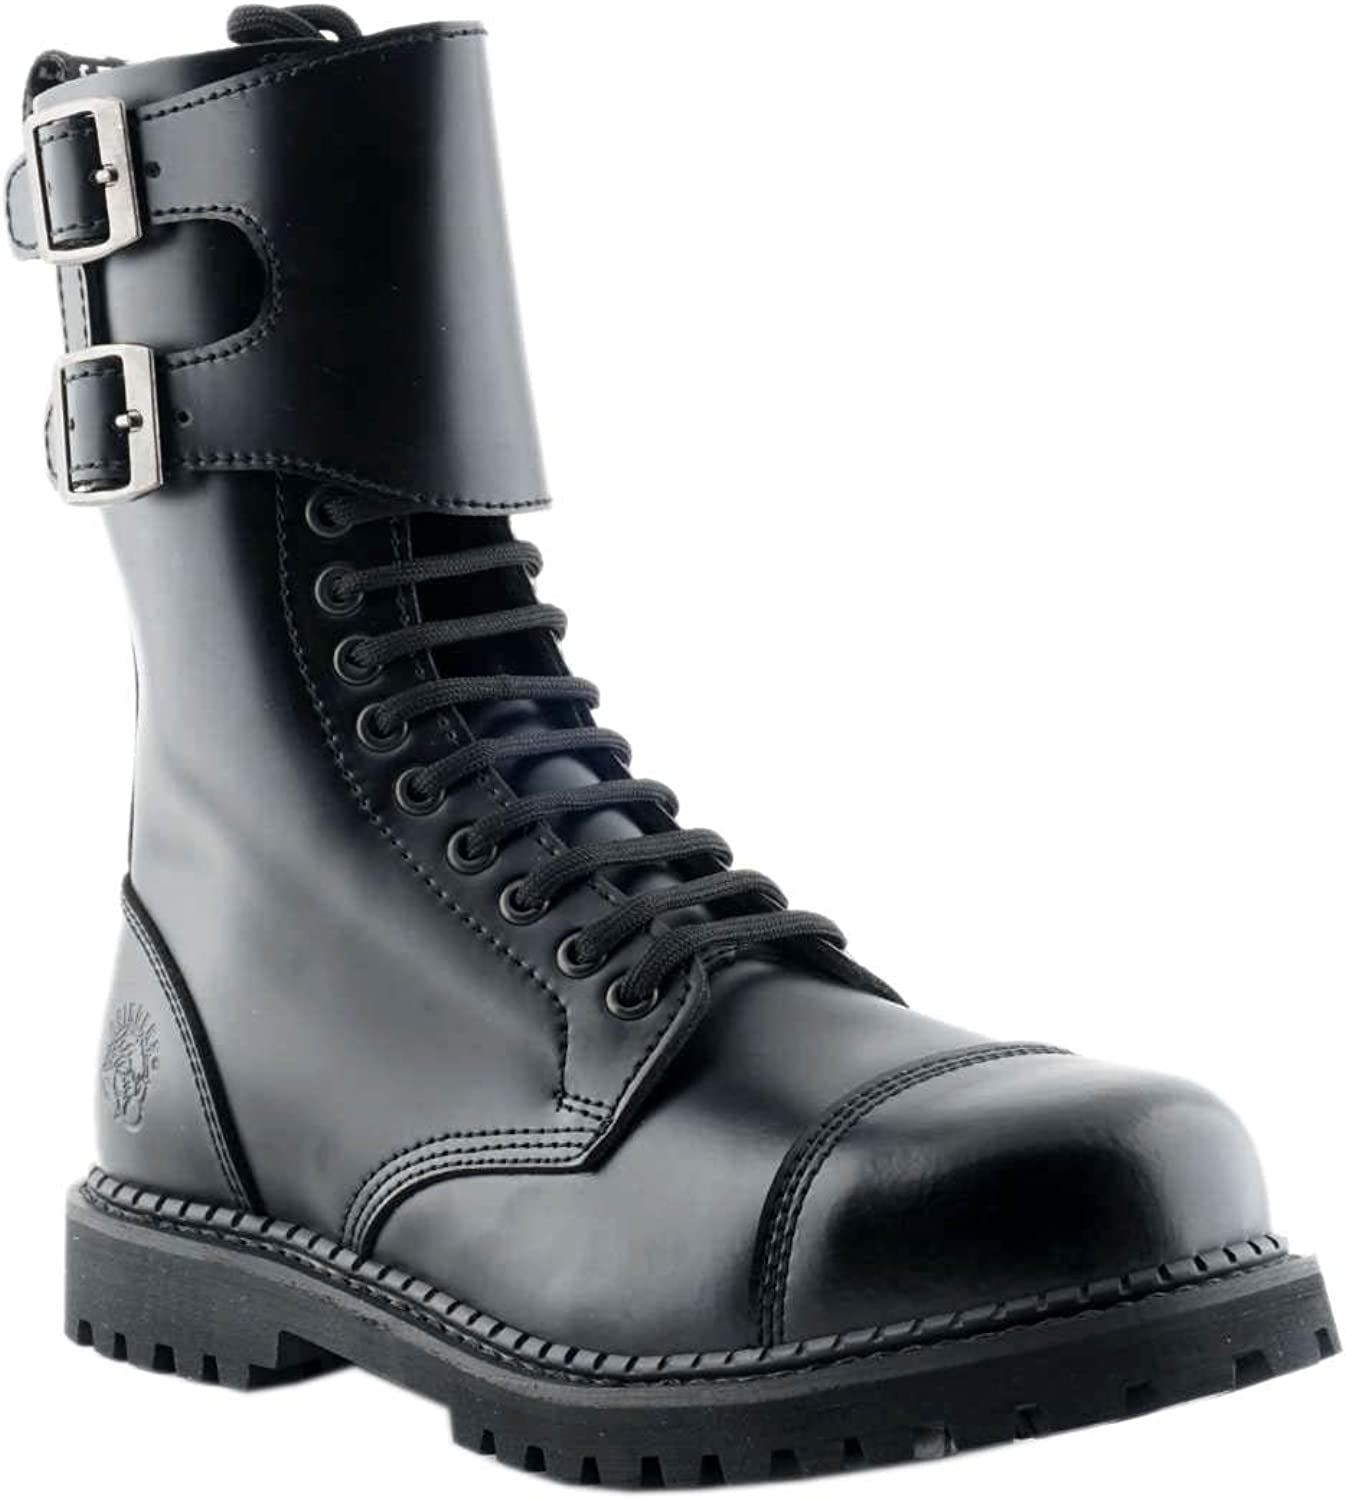 Smart Range Grinders Camelot CS Black 14 Eyelet Twin Buckle Unisex Safety Steel Toe Boots